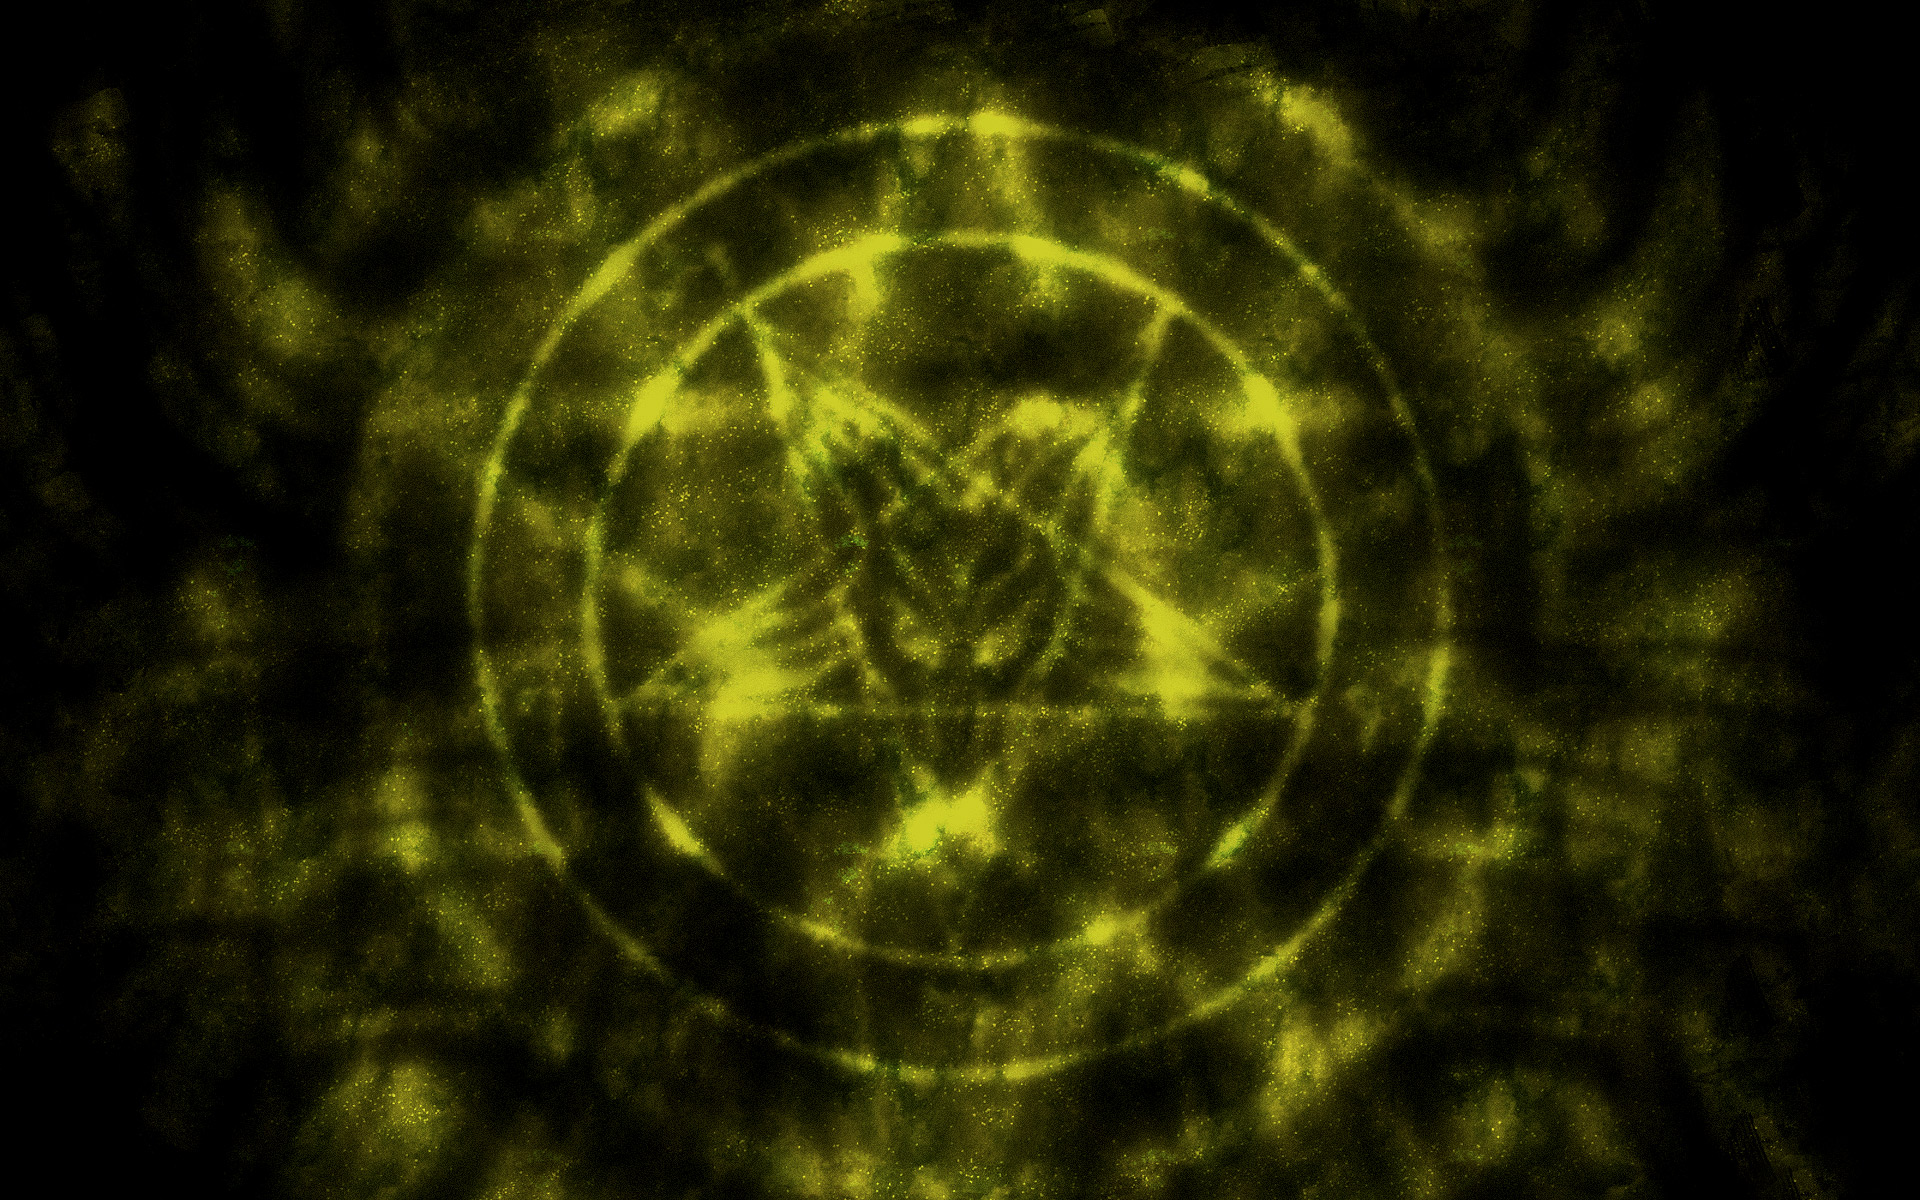 Hd Background Wallpaper 800x600: Pentagram Wallpaper HD